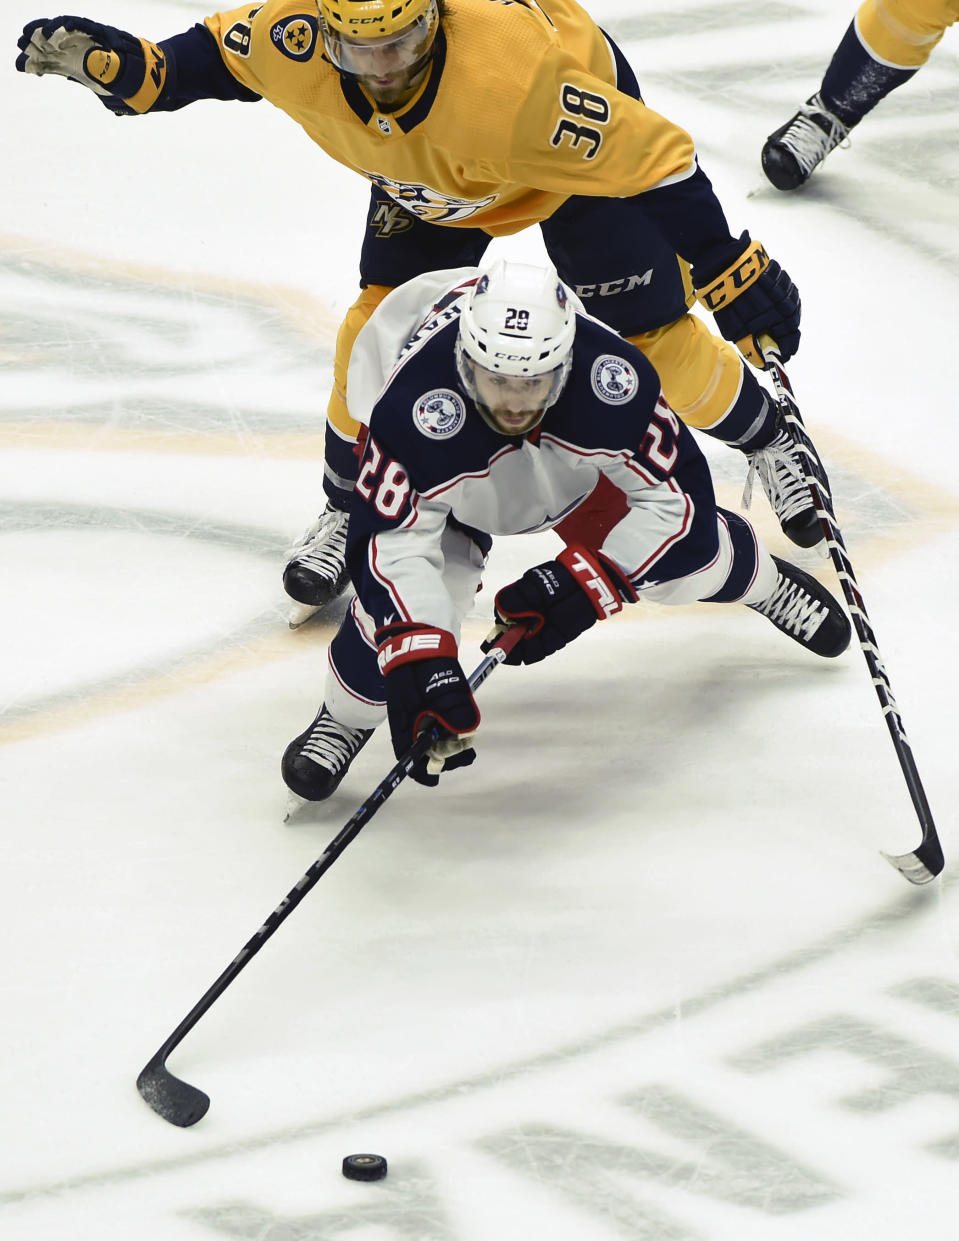 Columbus Blue Jackets right wing Oliver Bjorkstrand (28), of Denmark, maneuvers the puck in front of Nashville Predators right wing Ryan Hartman (38) during the second period of an NHL hockey game Saturday, April 7, 2018, in Nashville, Tenn. (AP Photo/Mark Zaleski)